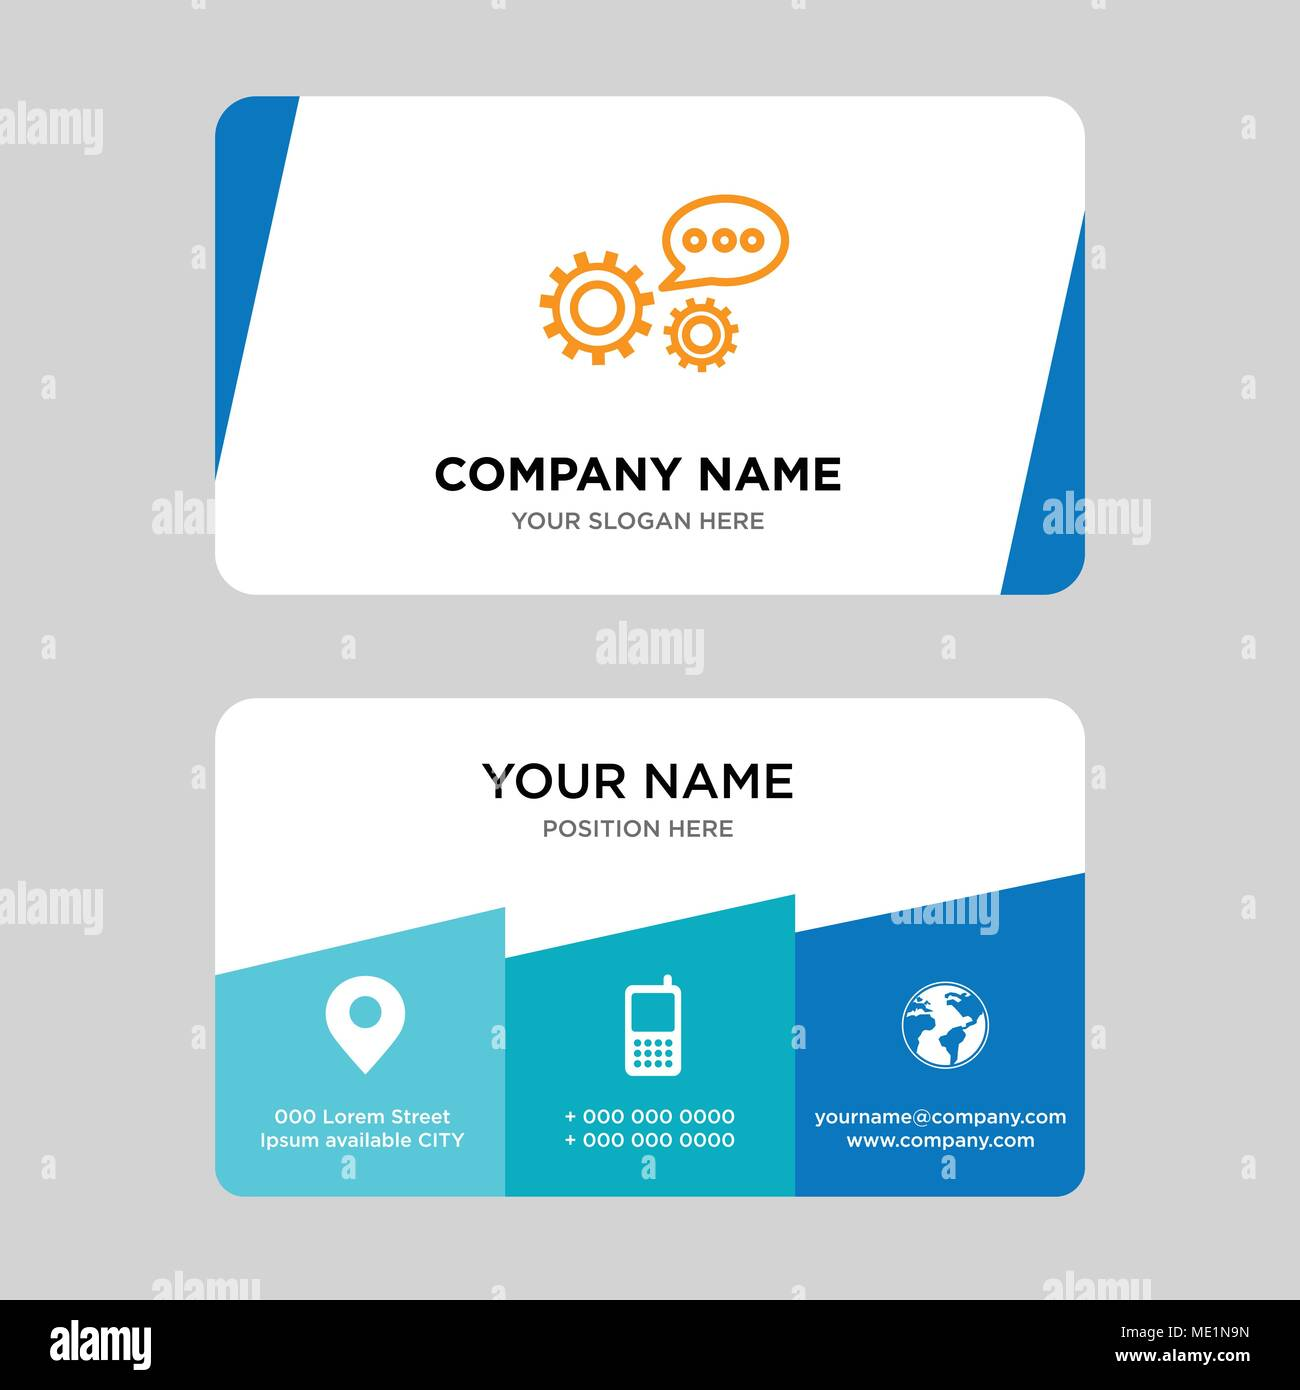 3d data analytics business card design template visiting for your 3d data analytics business card design template visiting for your company modern creative and clean identity card vector illustration accmission Image collections